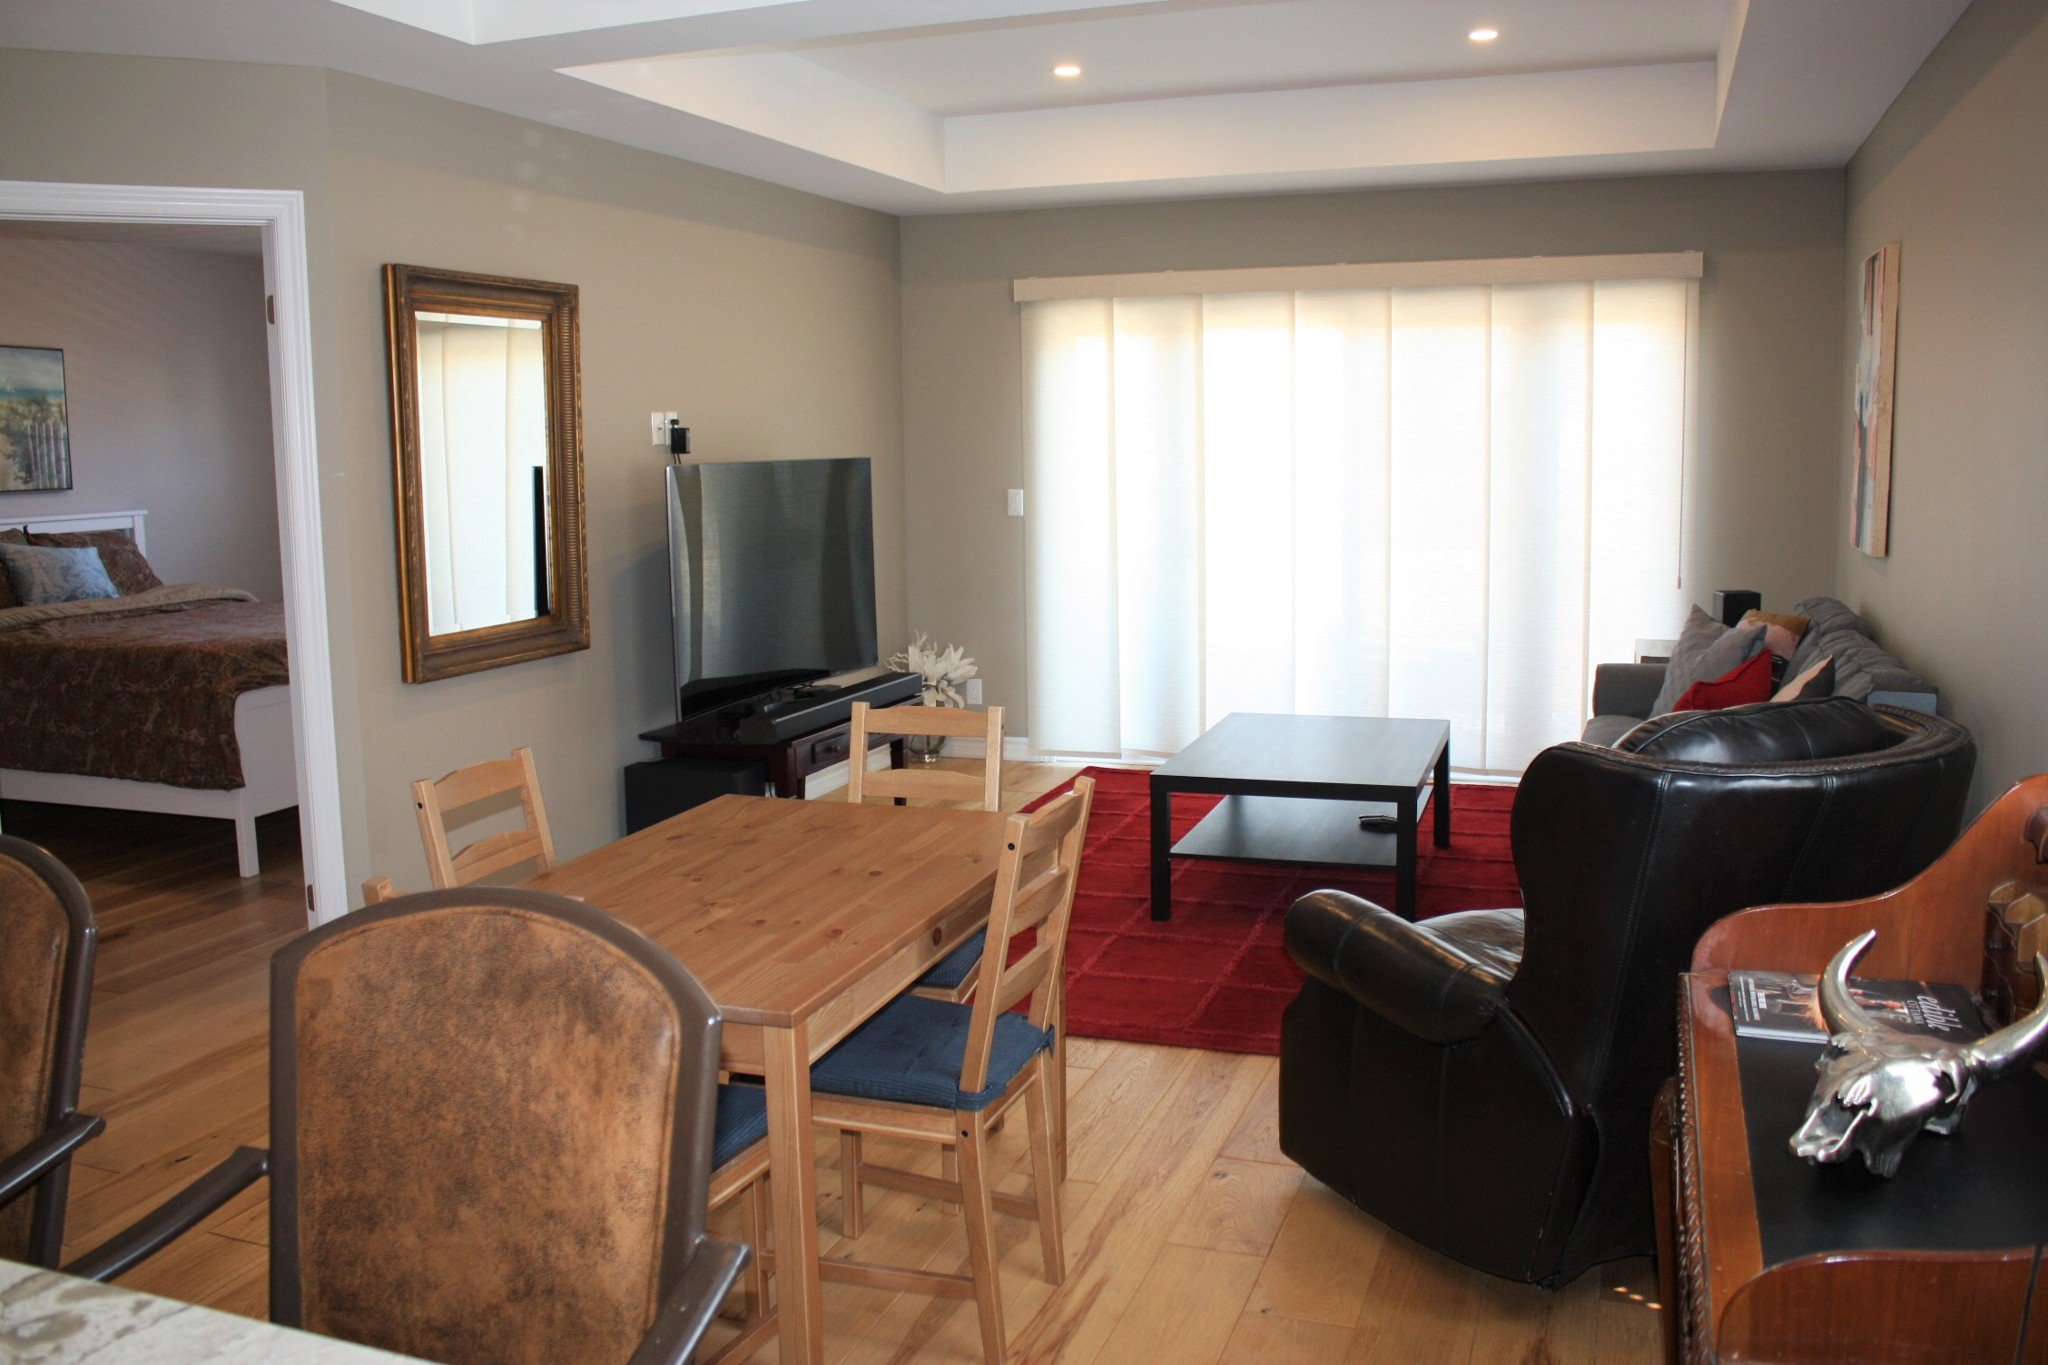 Photo 12: Photos: 706 Ontario Street in Cobourg: Residential Attached for sale : MLS®# 254262